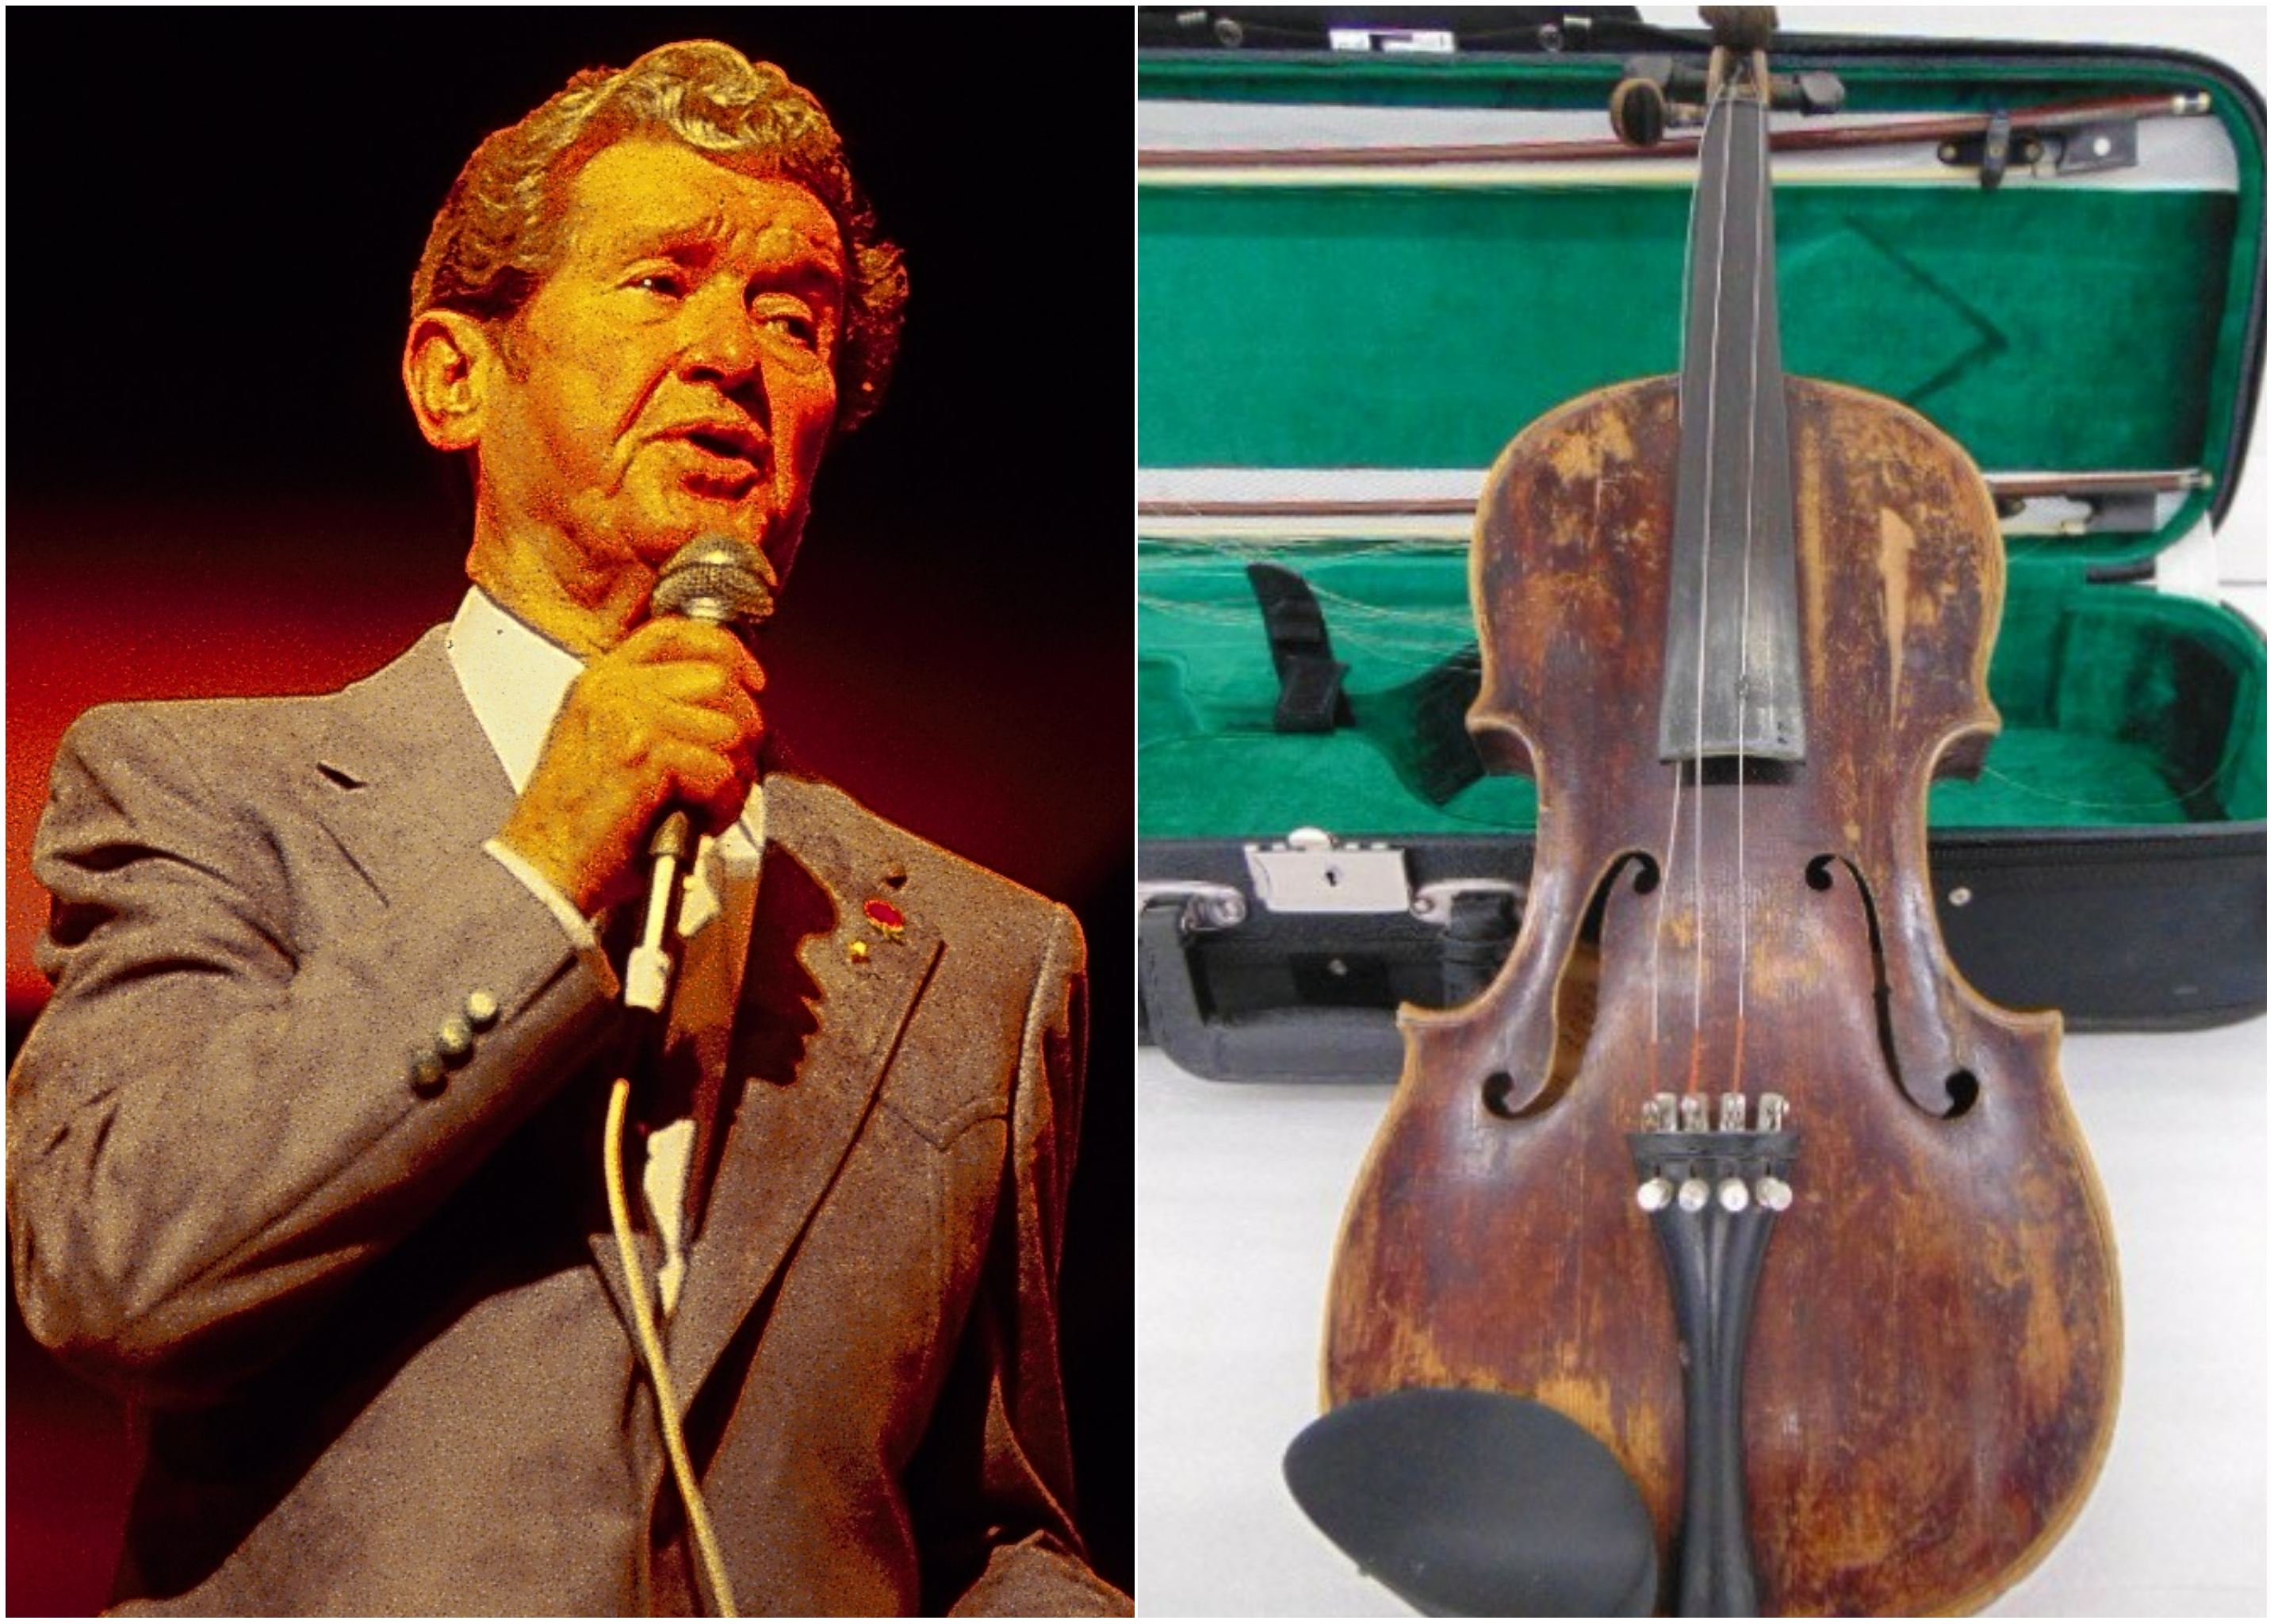 Roy Acuff Fiddle Returned to Owner By Goodwill